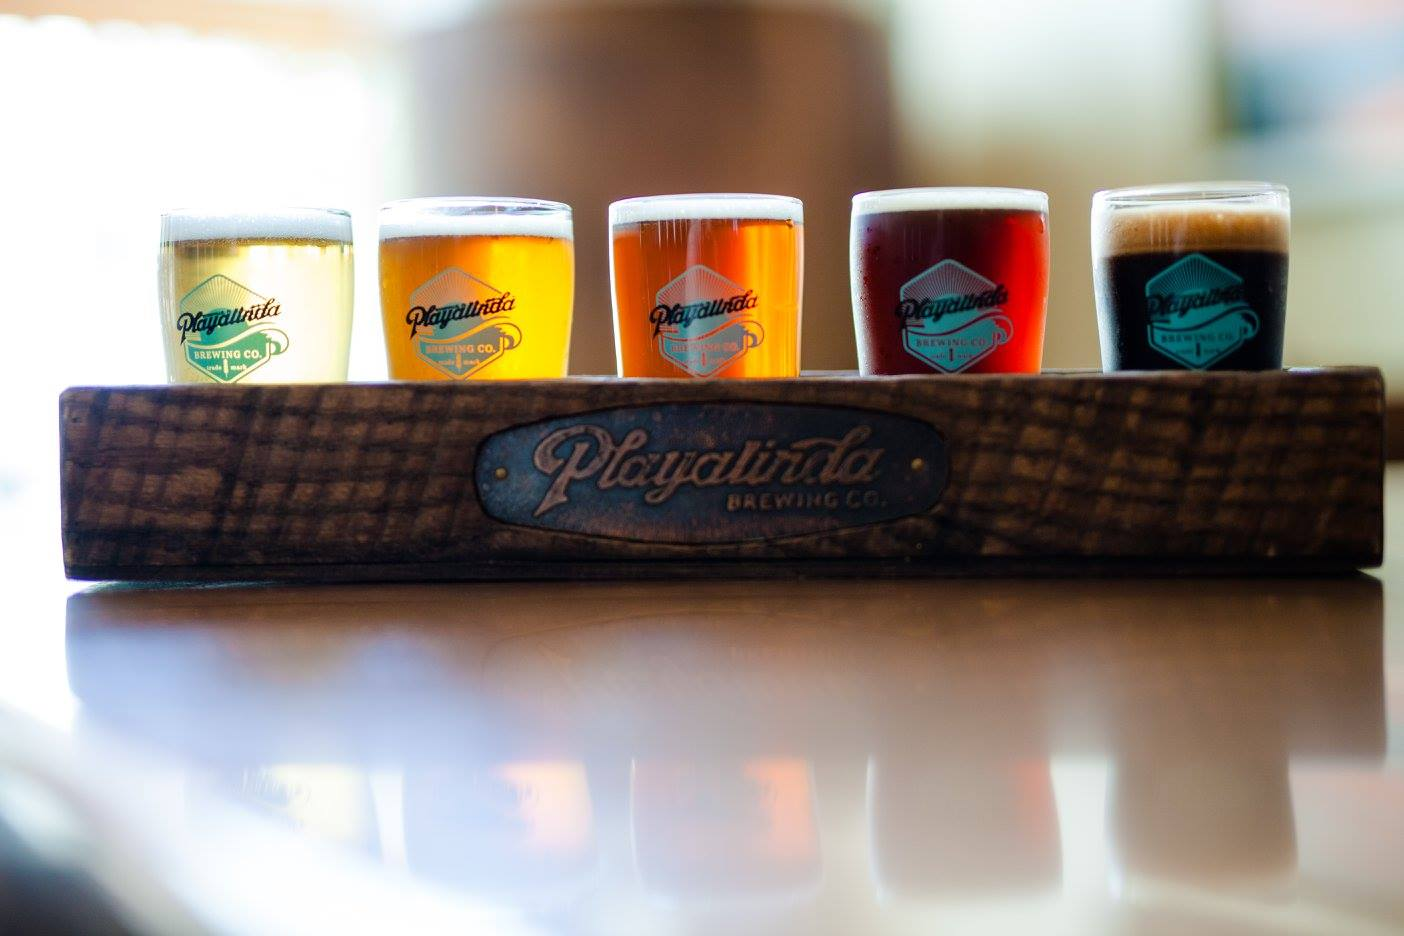 flight of beers at Playlinda Brewing Co